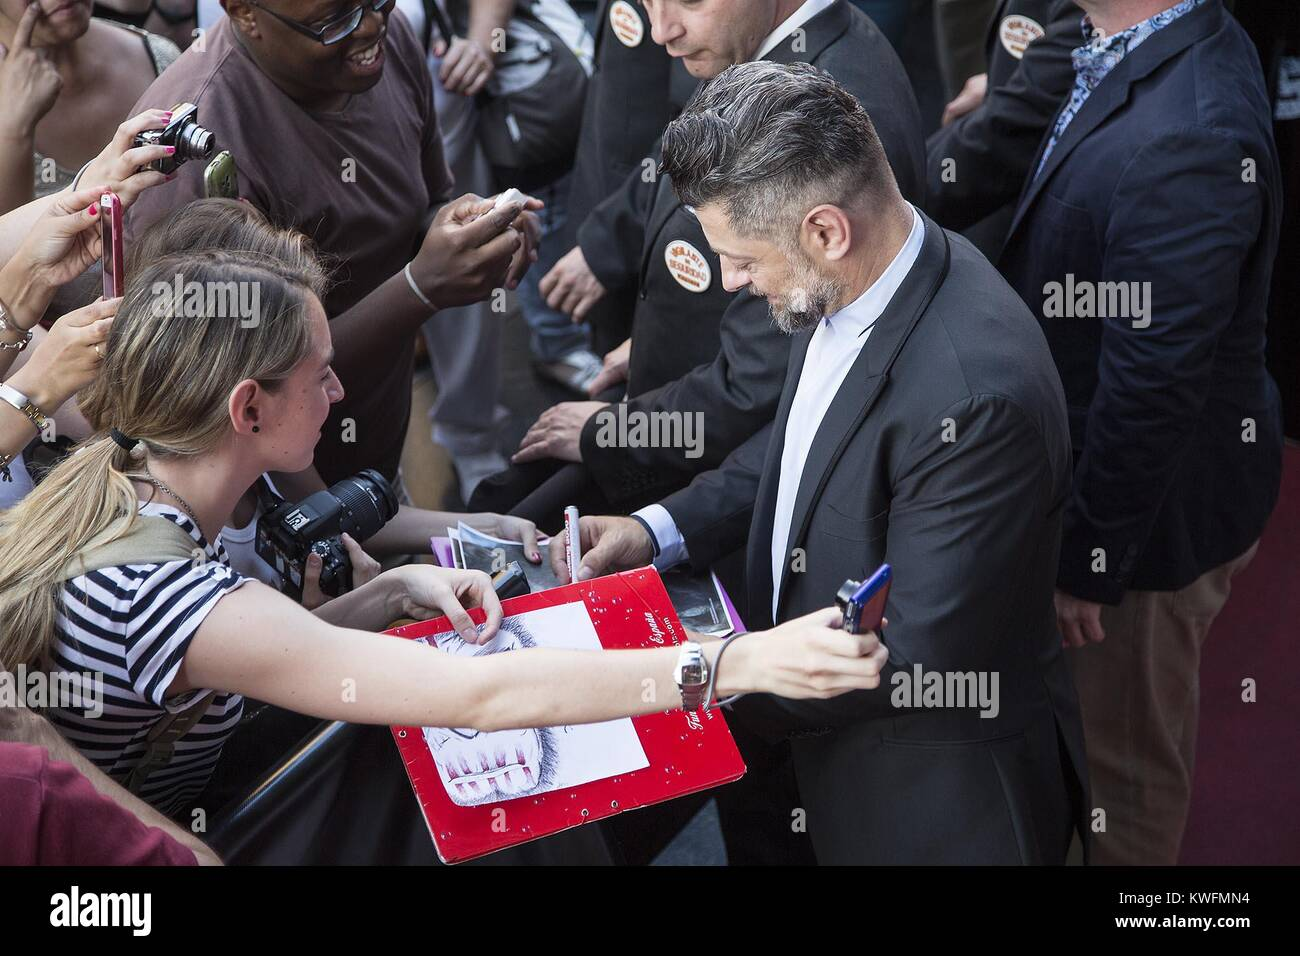 MADRID, SPAIN - JULY 16: Andy Serkis attends the 'Dawn of the Planet of the Apes' (El Amanecer del Planeta - Stock Image